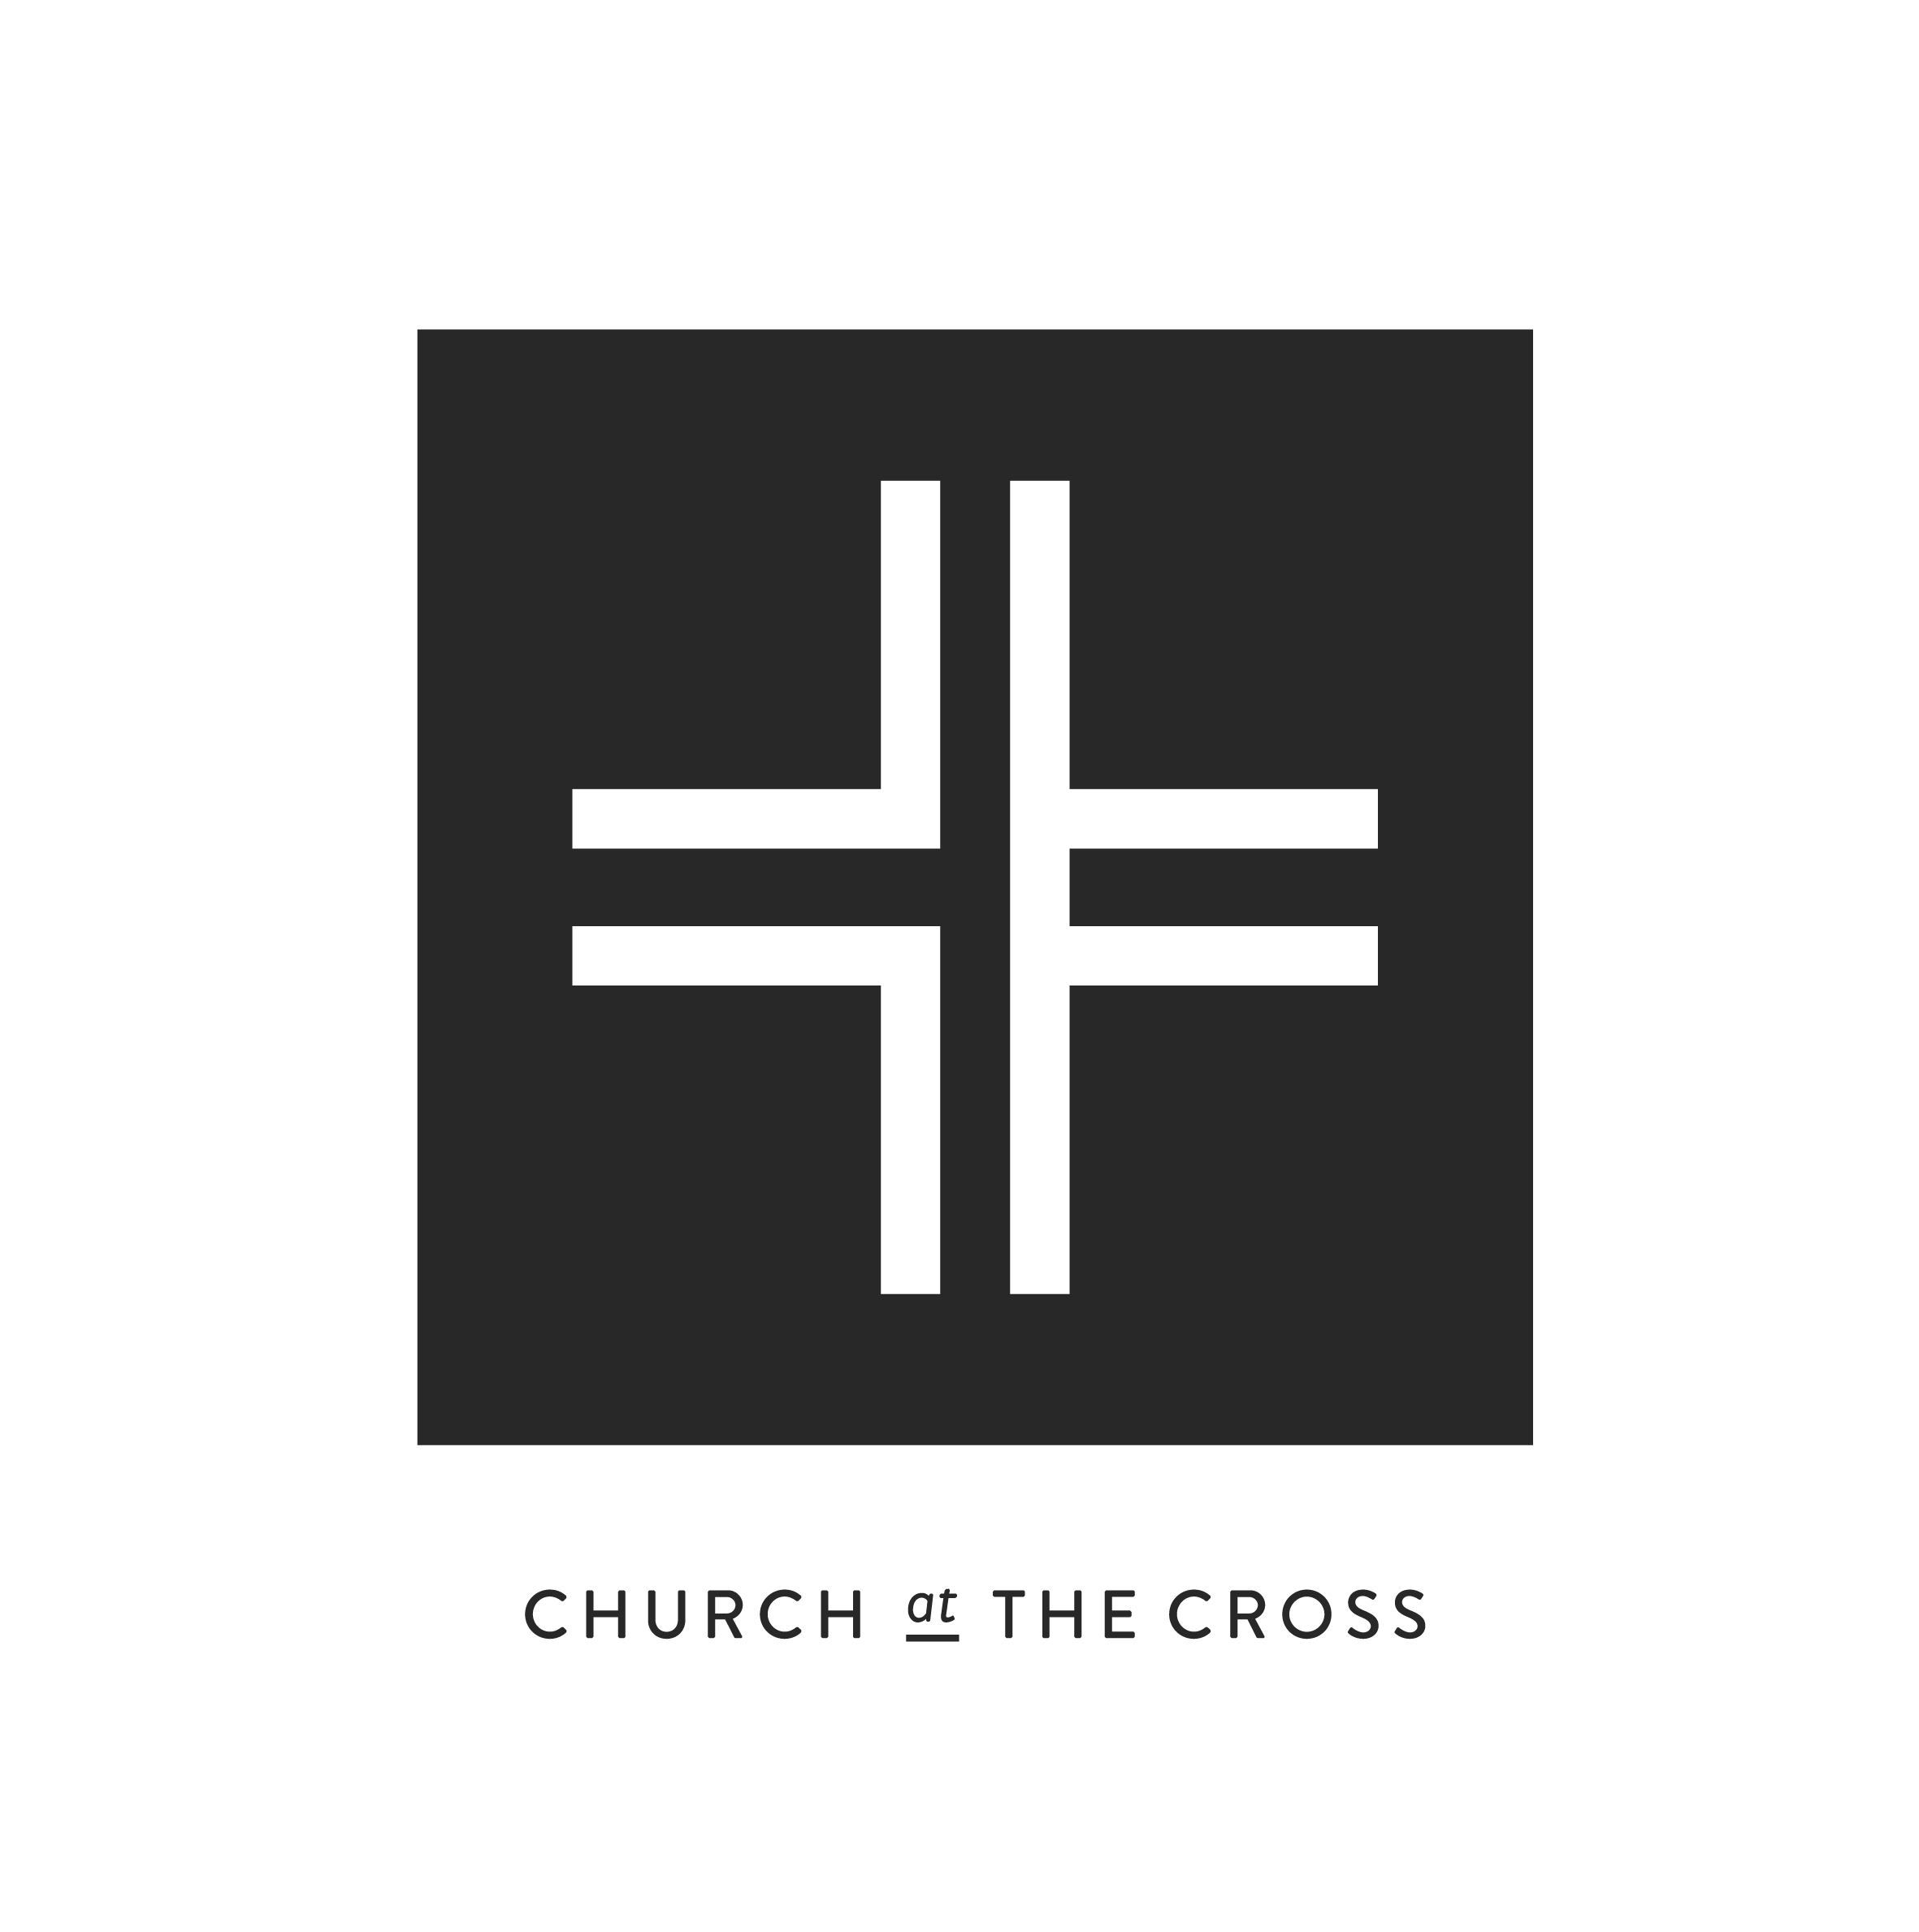 church_at_the_cross_branding-03.png